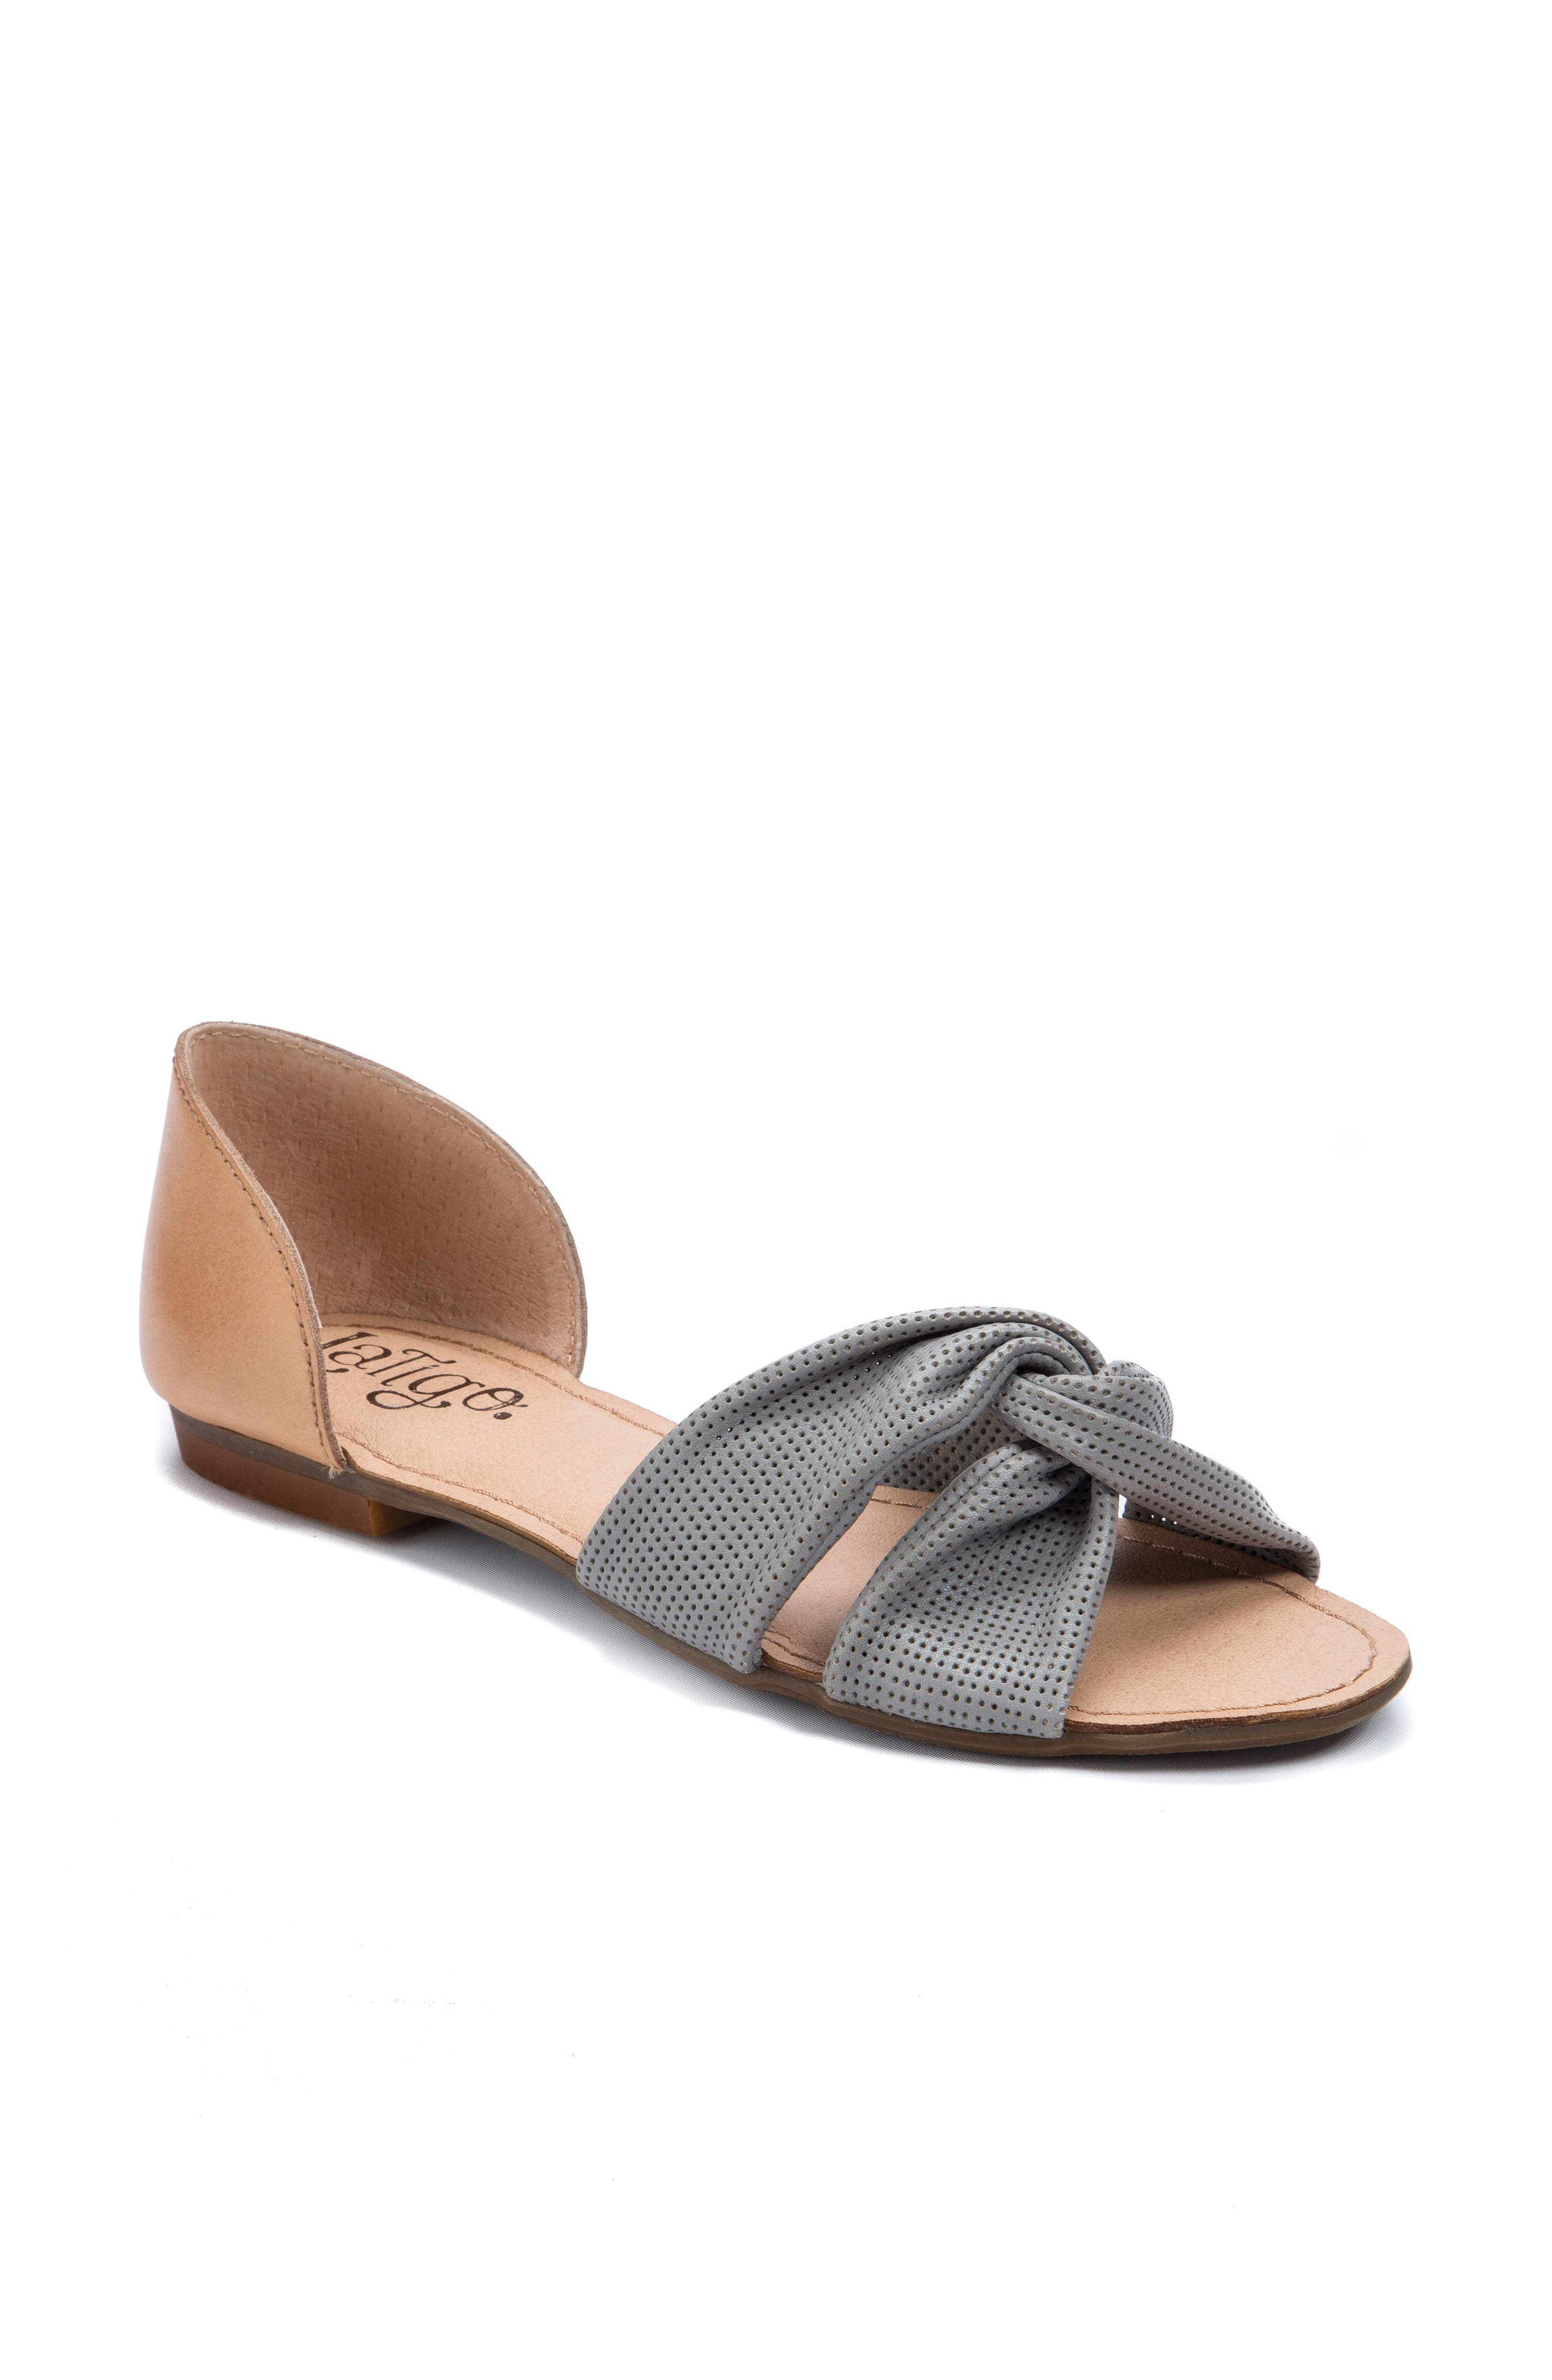 Darcy Perforated Flat Sandal,                             Main thumbnail 1, color,                             Mist Grey Leather